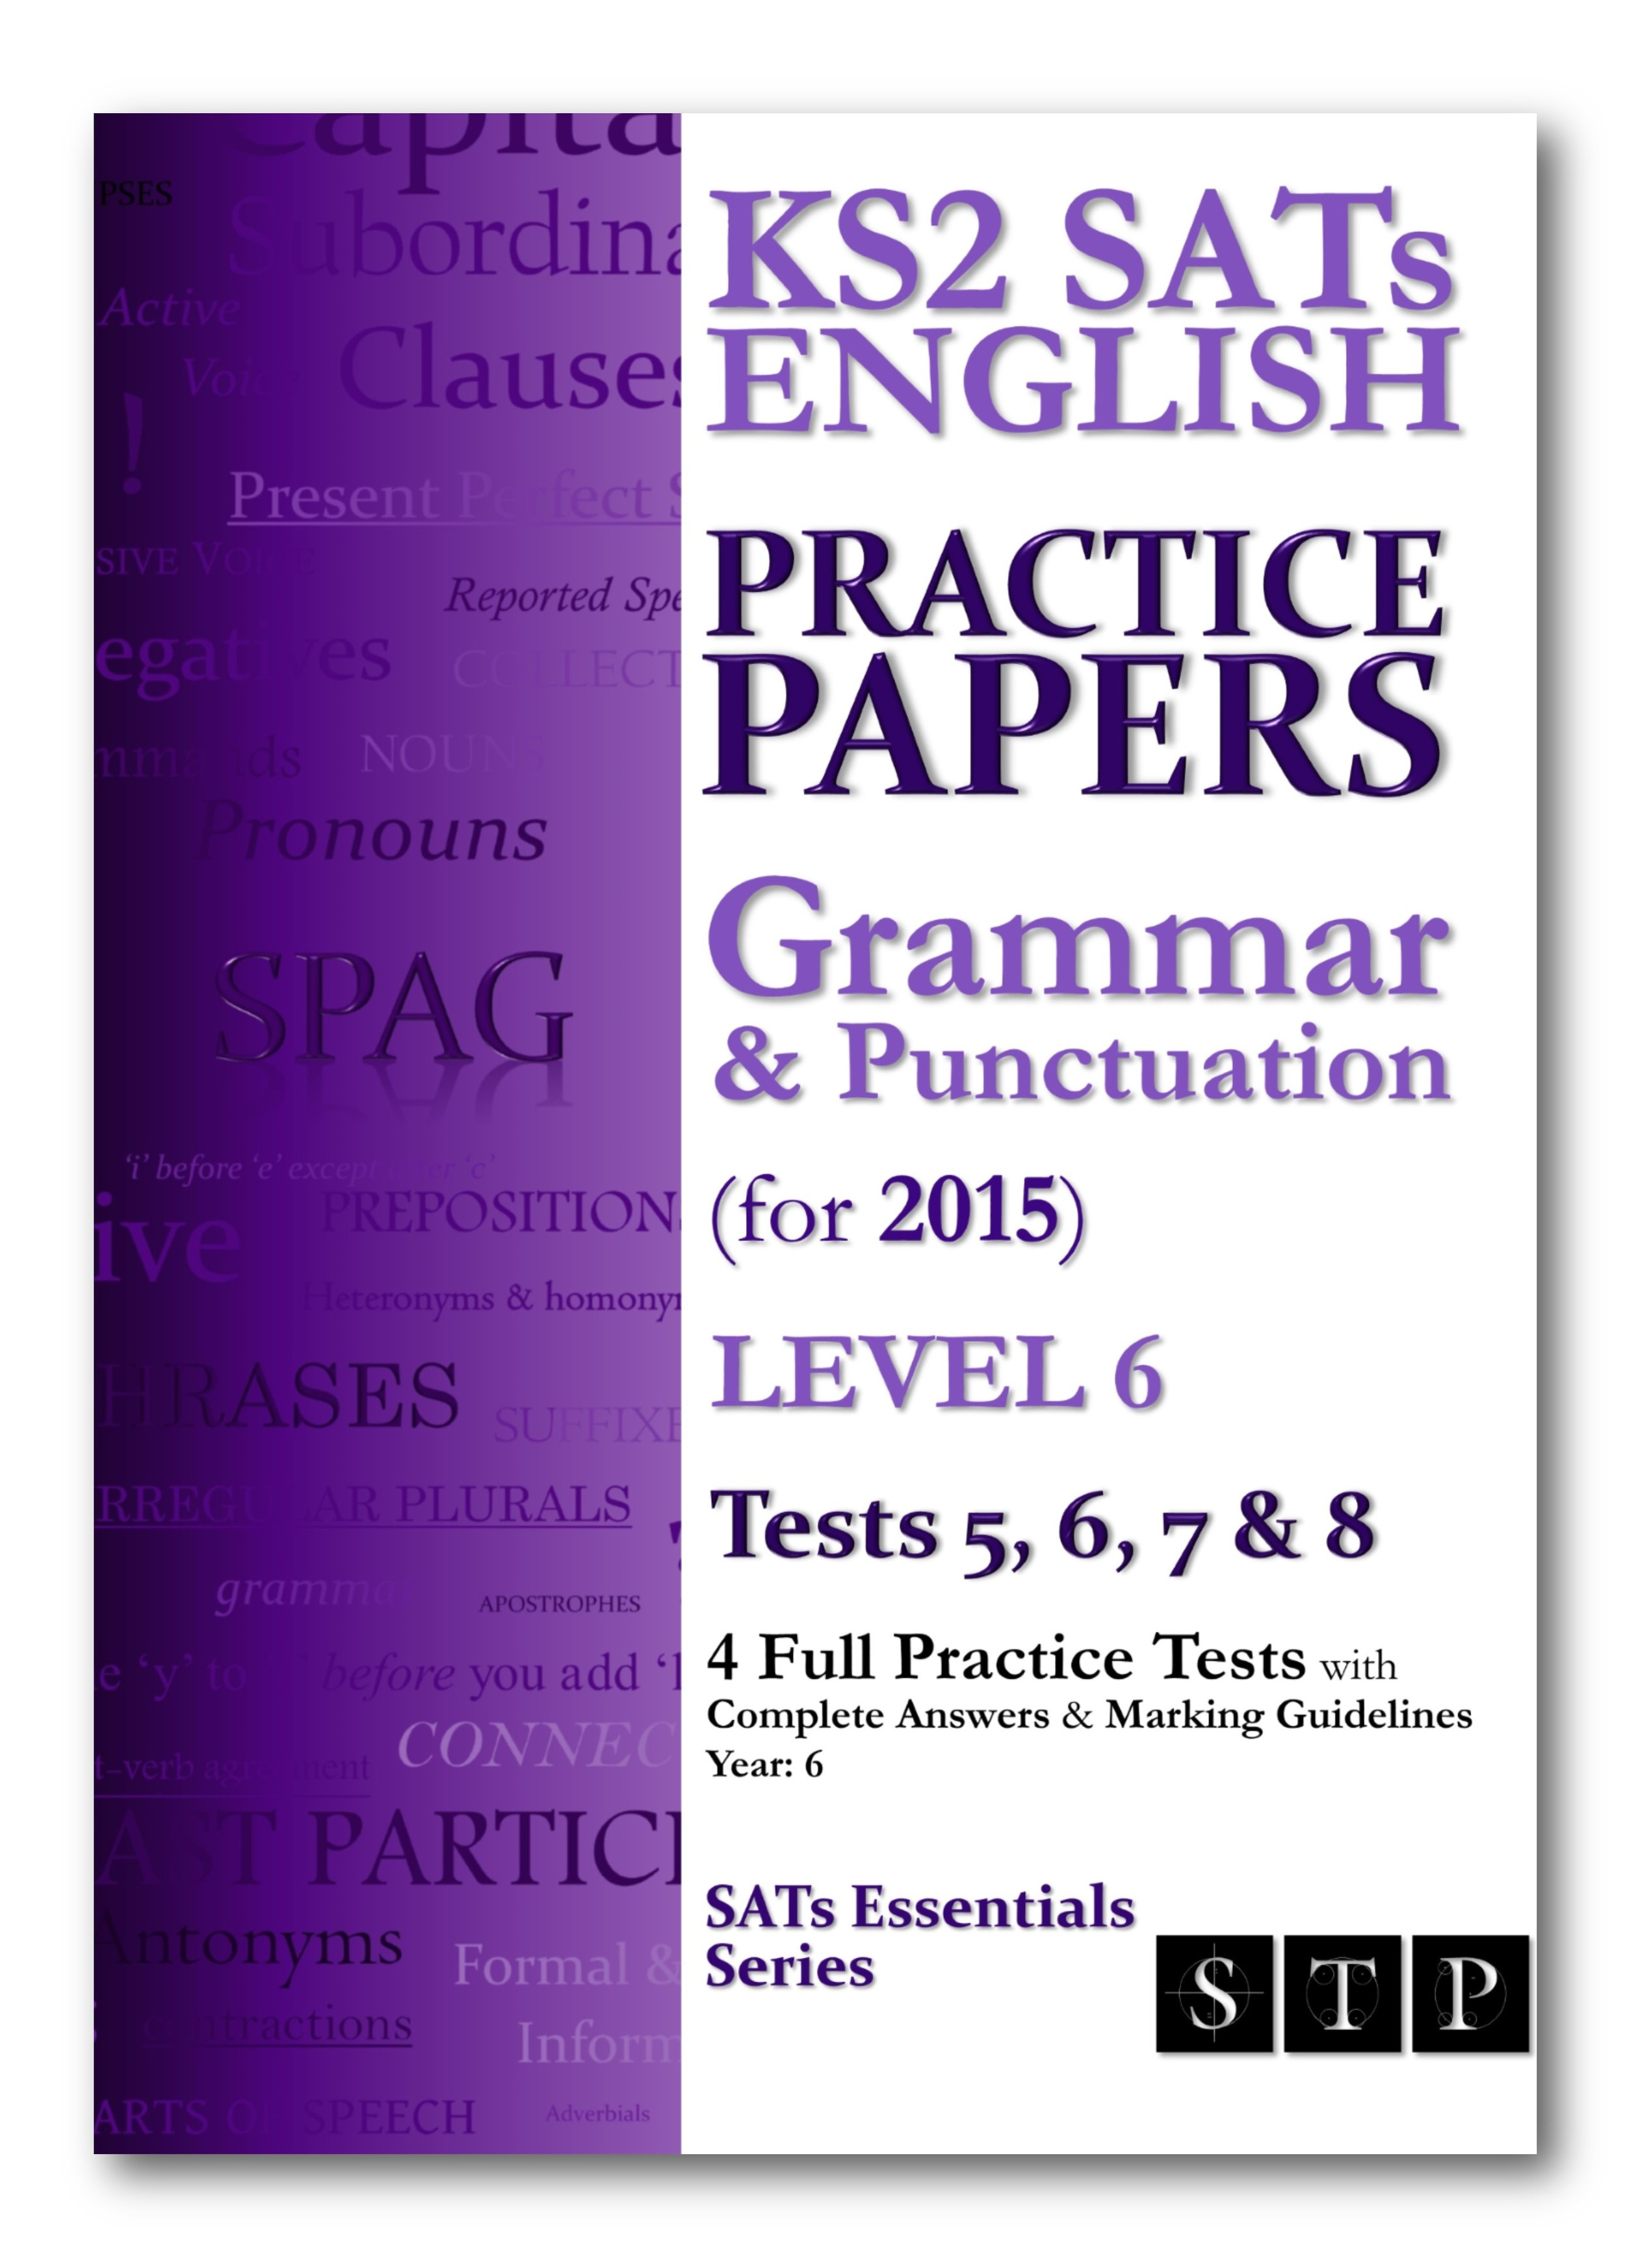 KS2 SATS Grammar & Punctuation Practice Papers Level 6 Tests 5, 6, 7 & 8